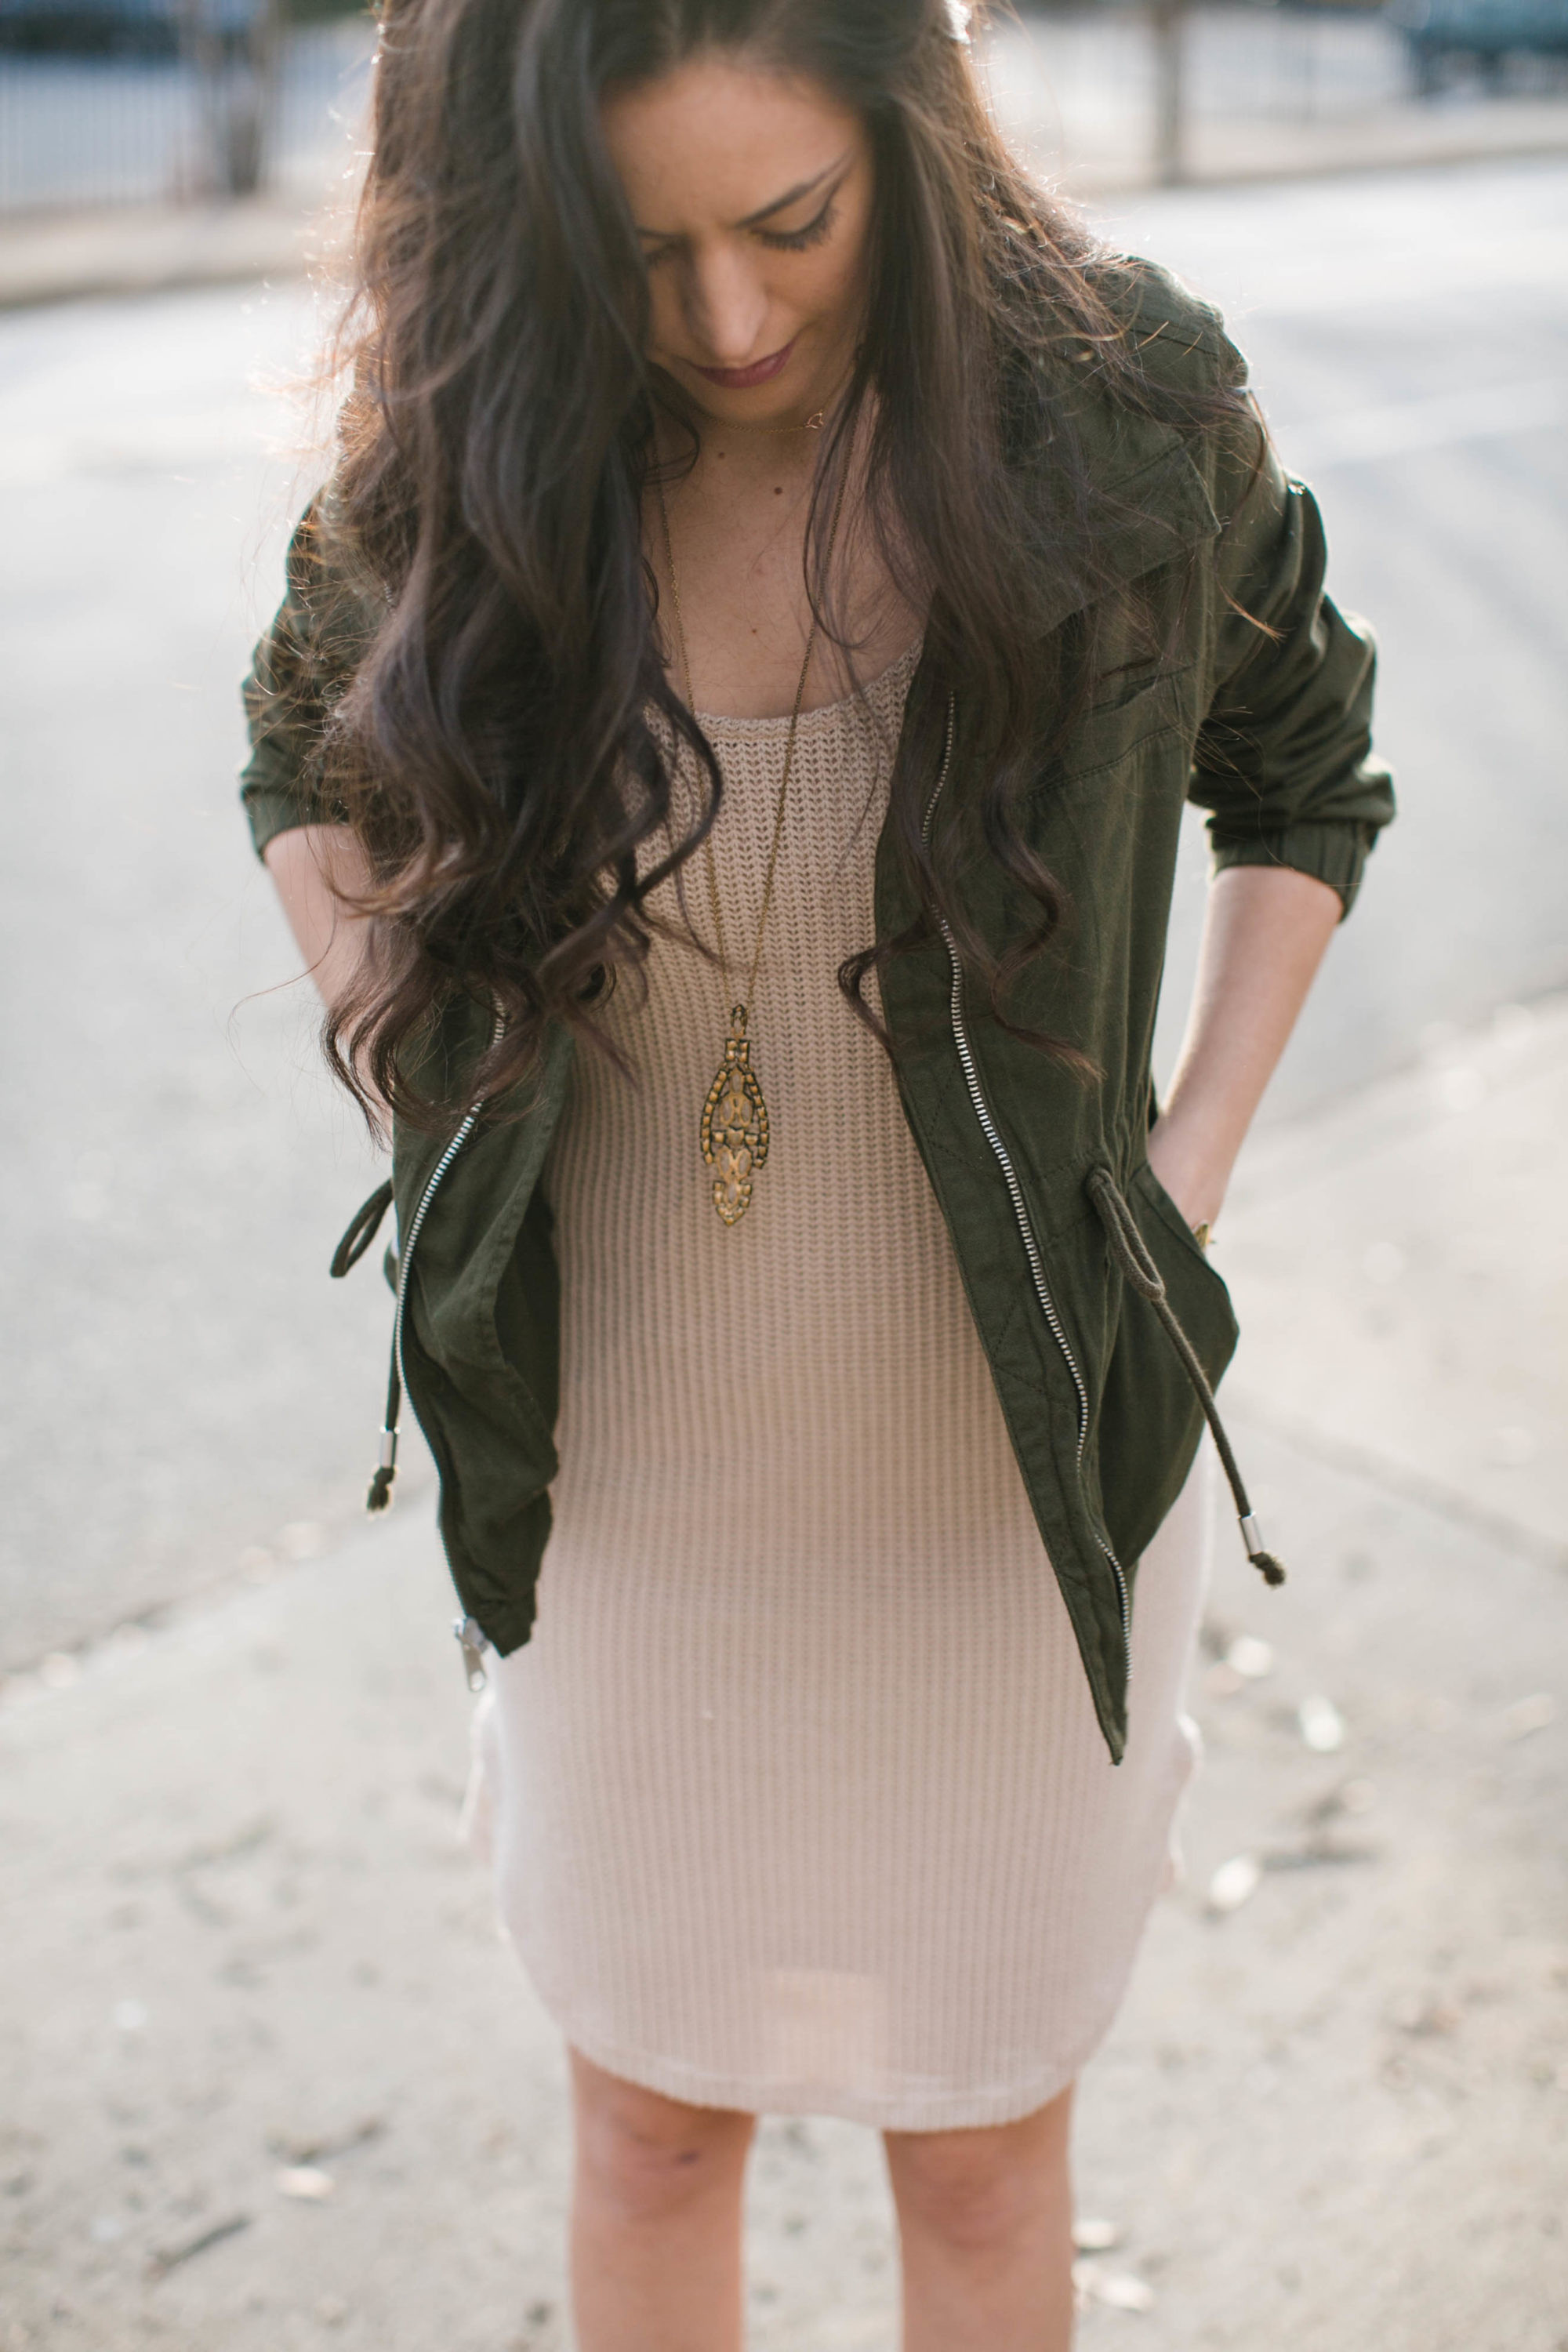 Old Navy Twill Field Jacket, military jacket, earth tones, transitional outfit ideas, what to wear in the fall, fall outfit ideas